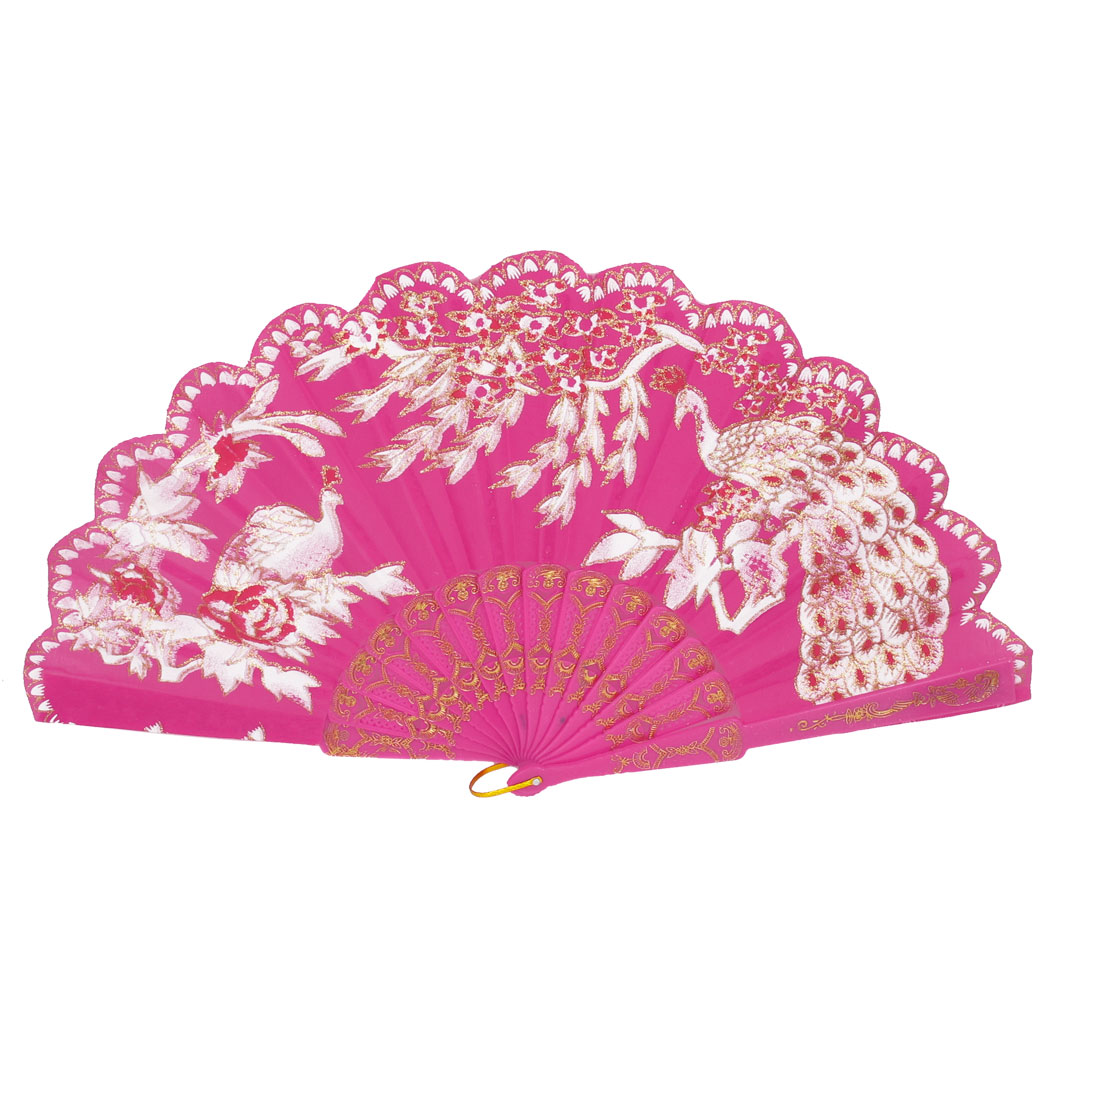 Women Party Gift Carved Ribs Floral Peacock Pattern Folding Hand Fan Fuchsia